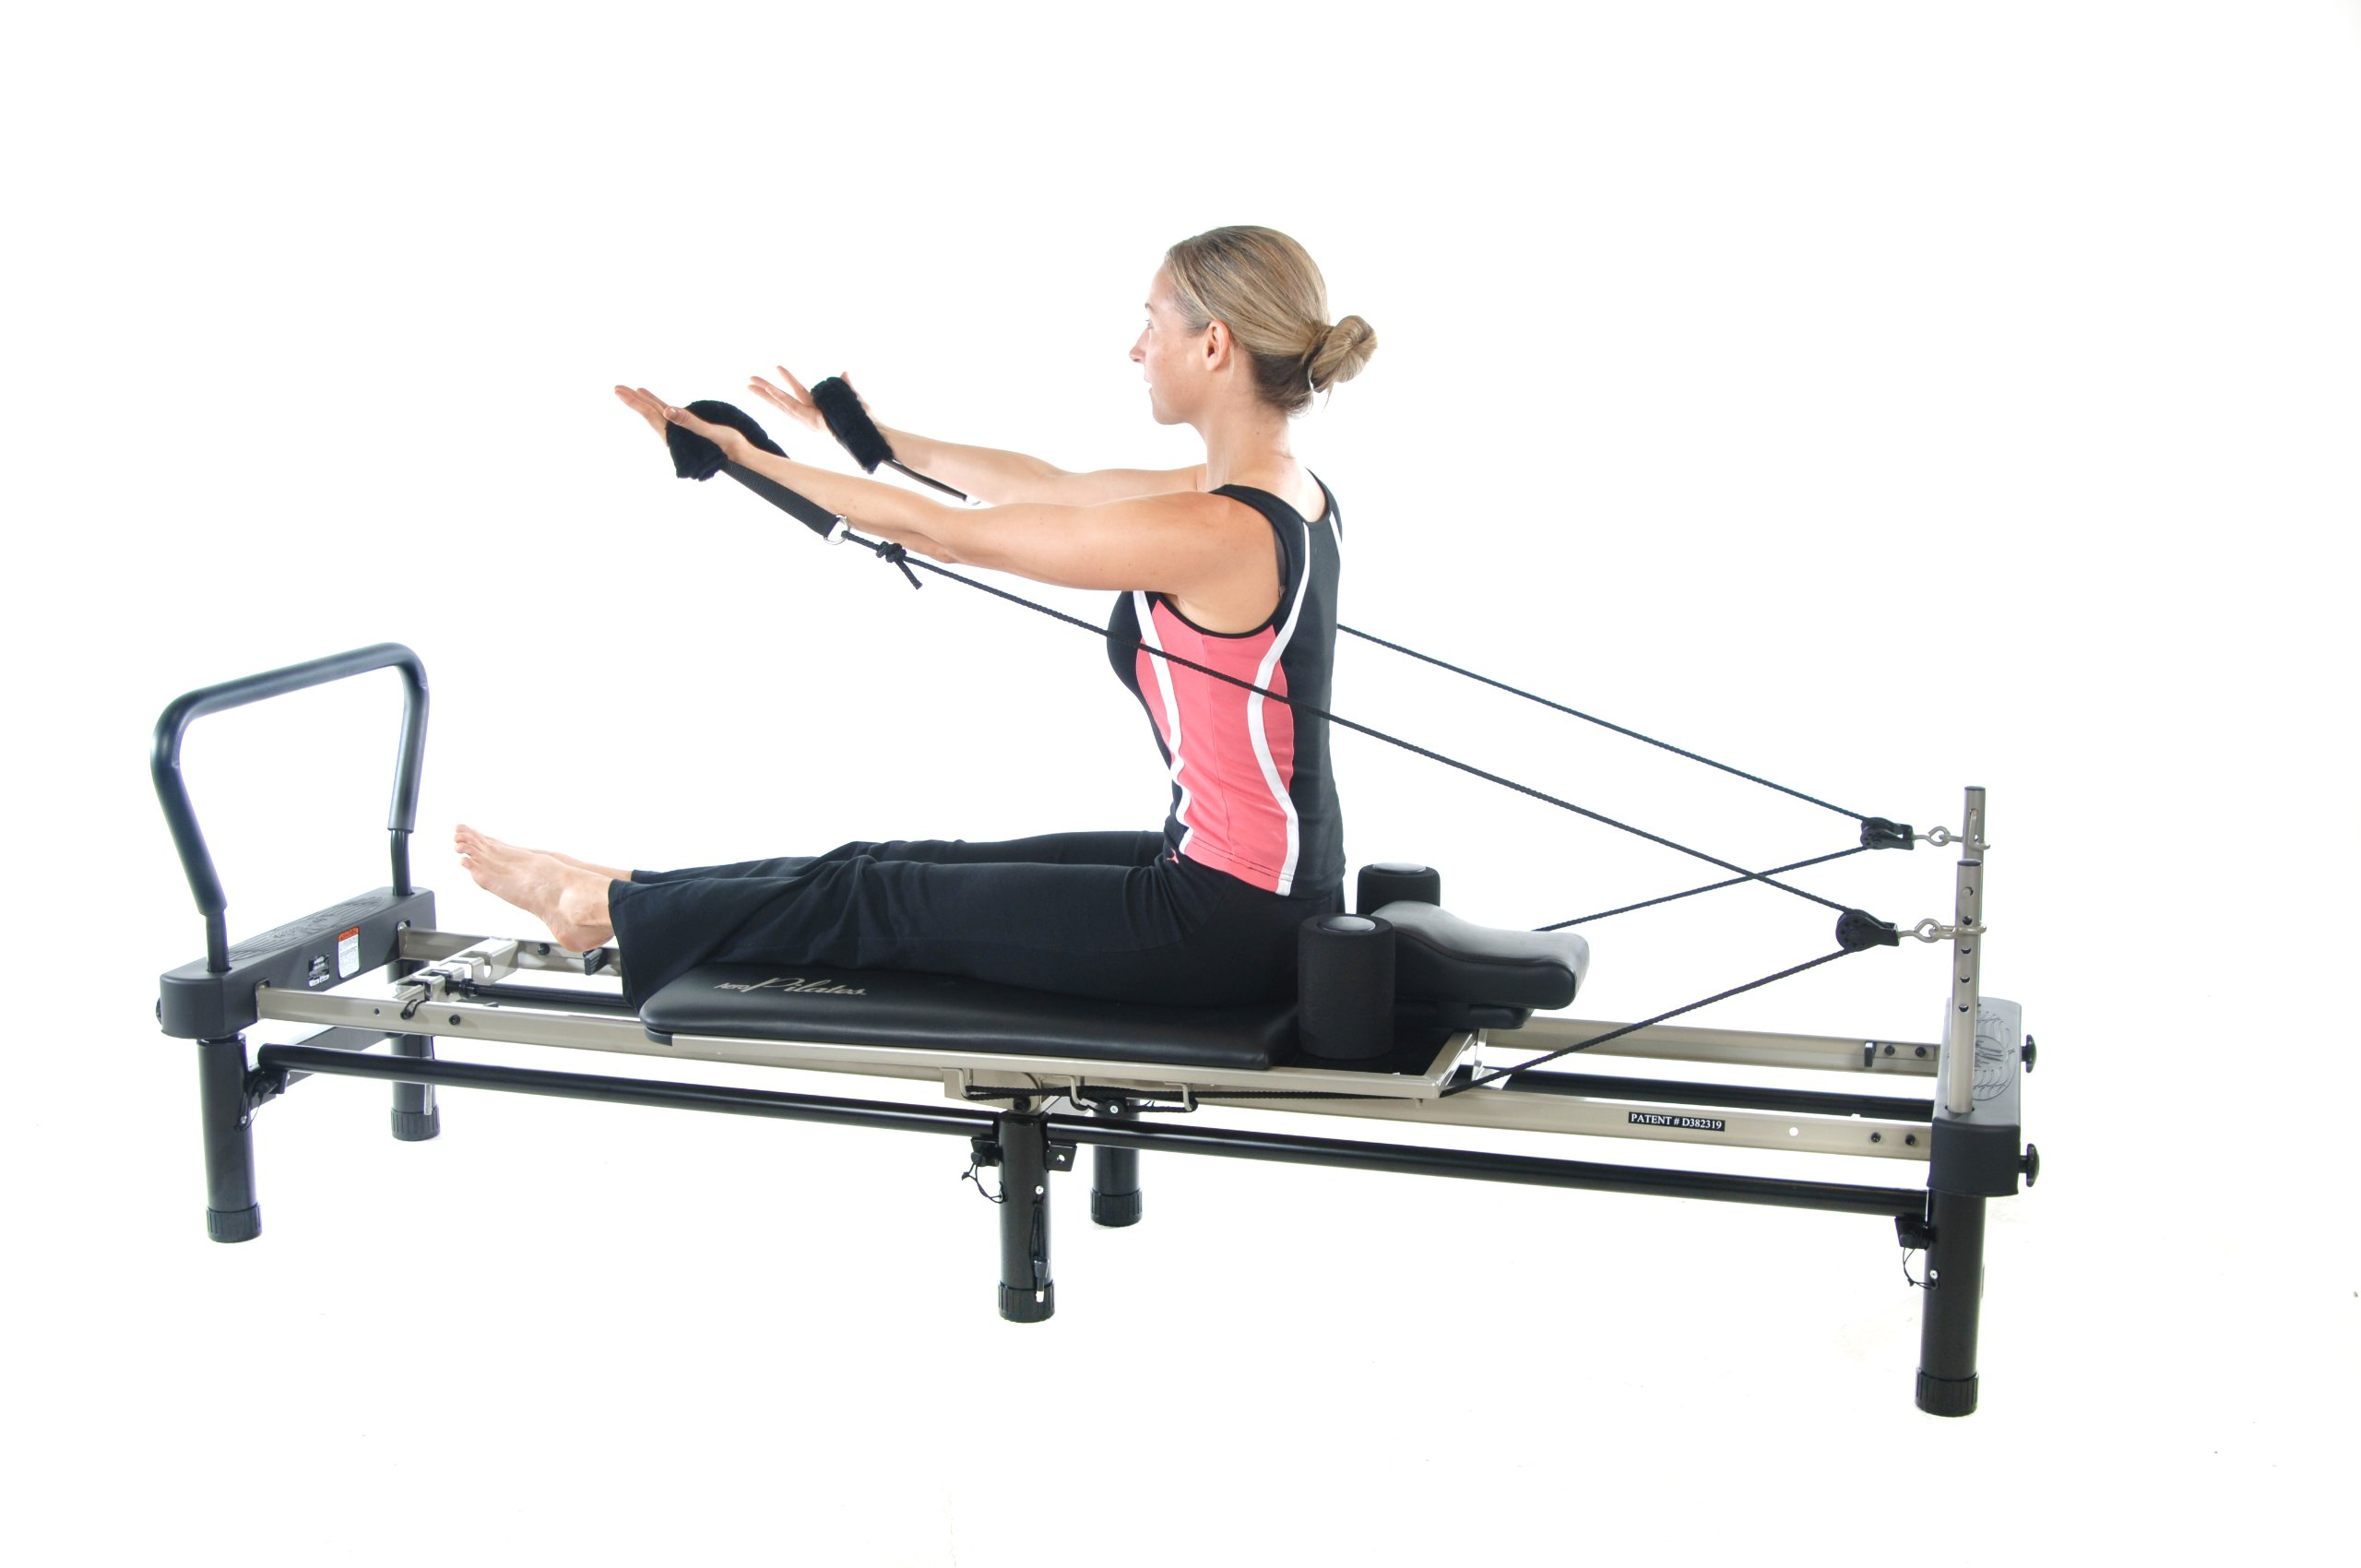 Stamina AeroPilates 700 Premier Reformer with Stand, Cardio Rebounder, Neck Pillow and DVDs by Stamina (Image #9)